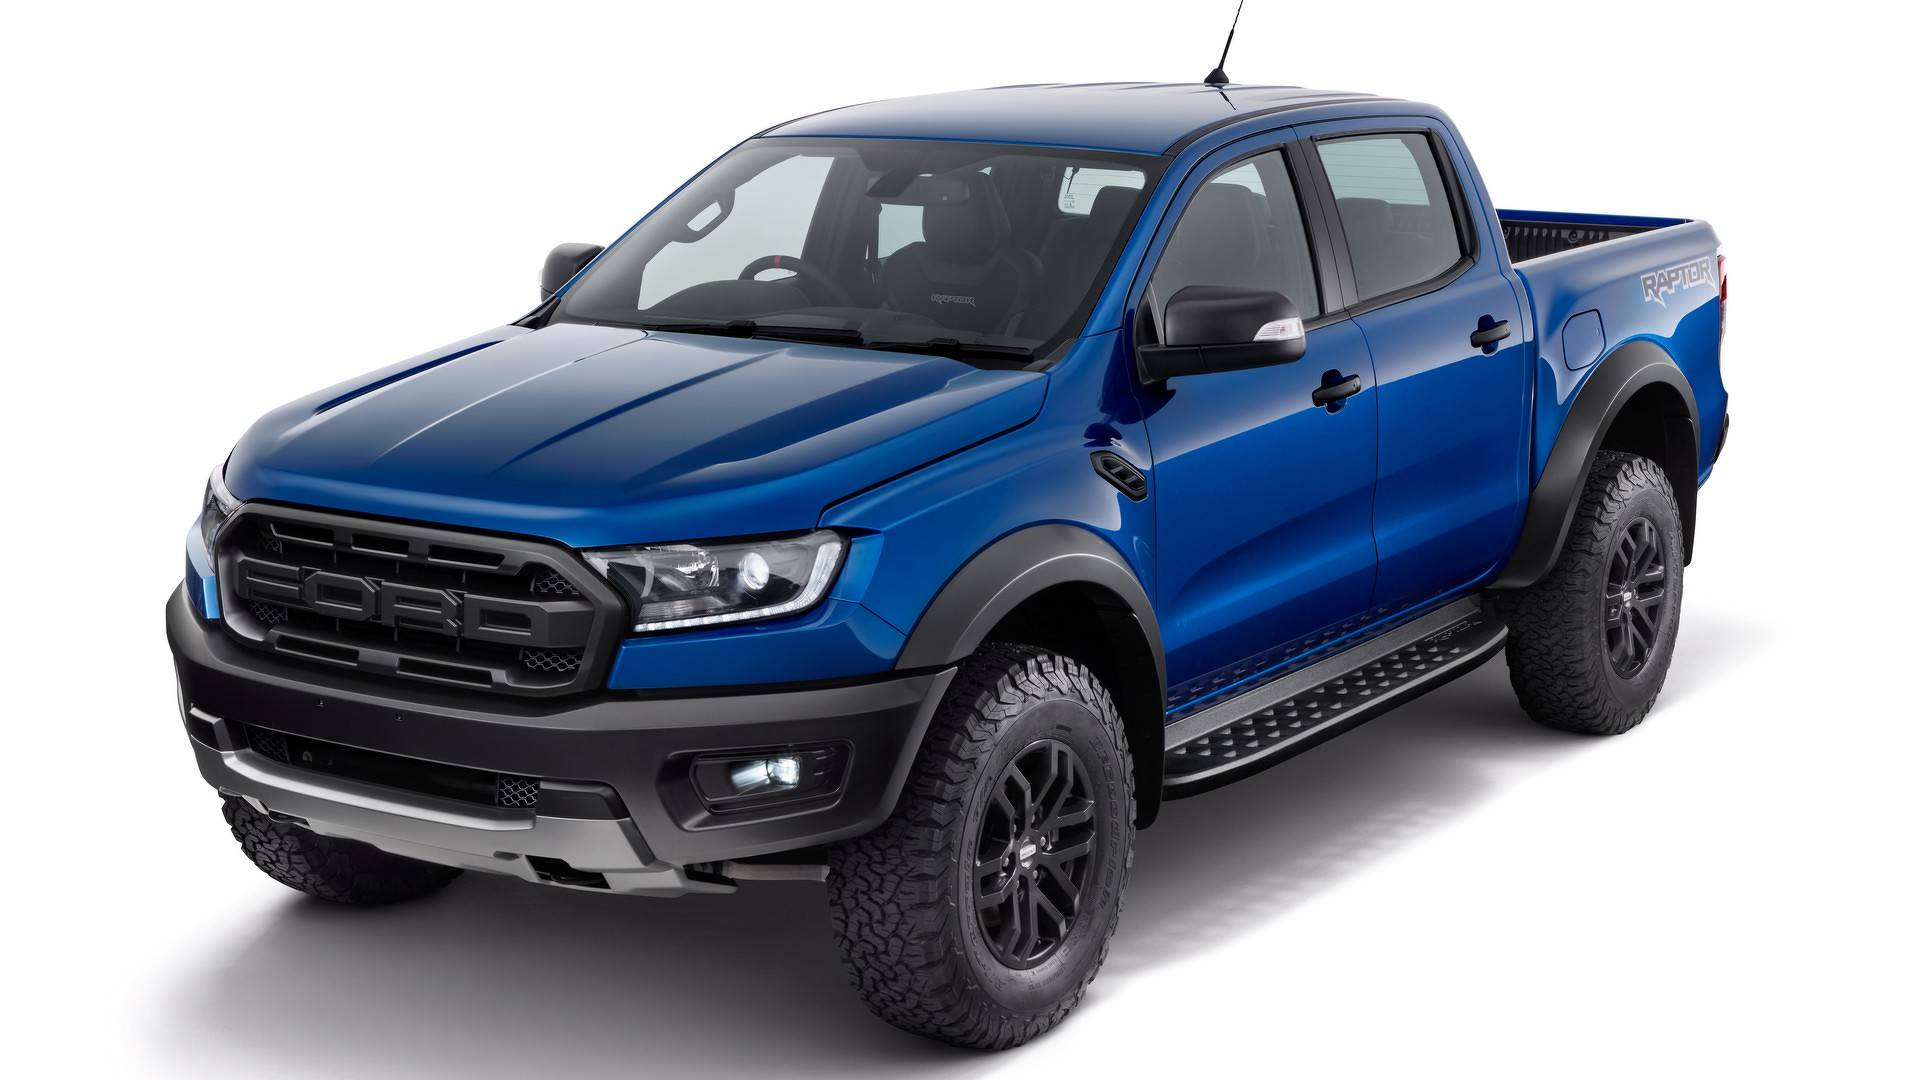 Ford Ranger Raptor 2018 (1)